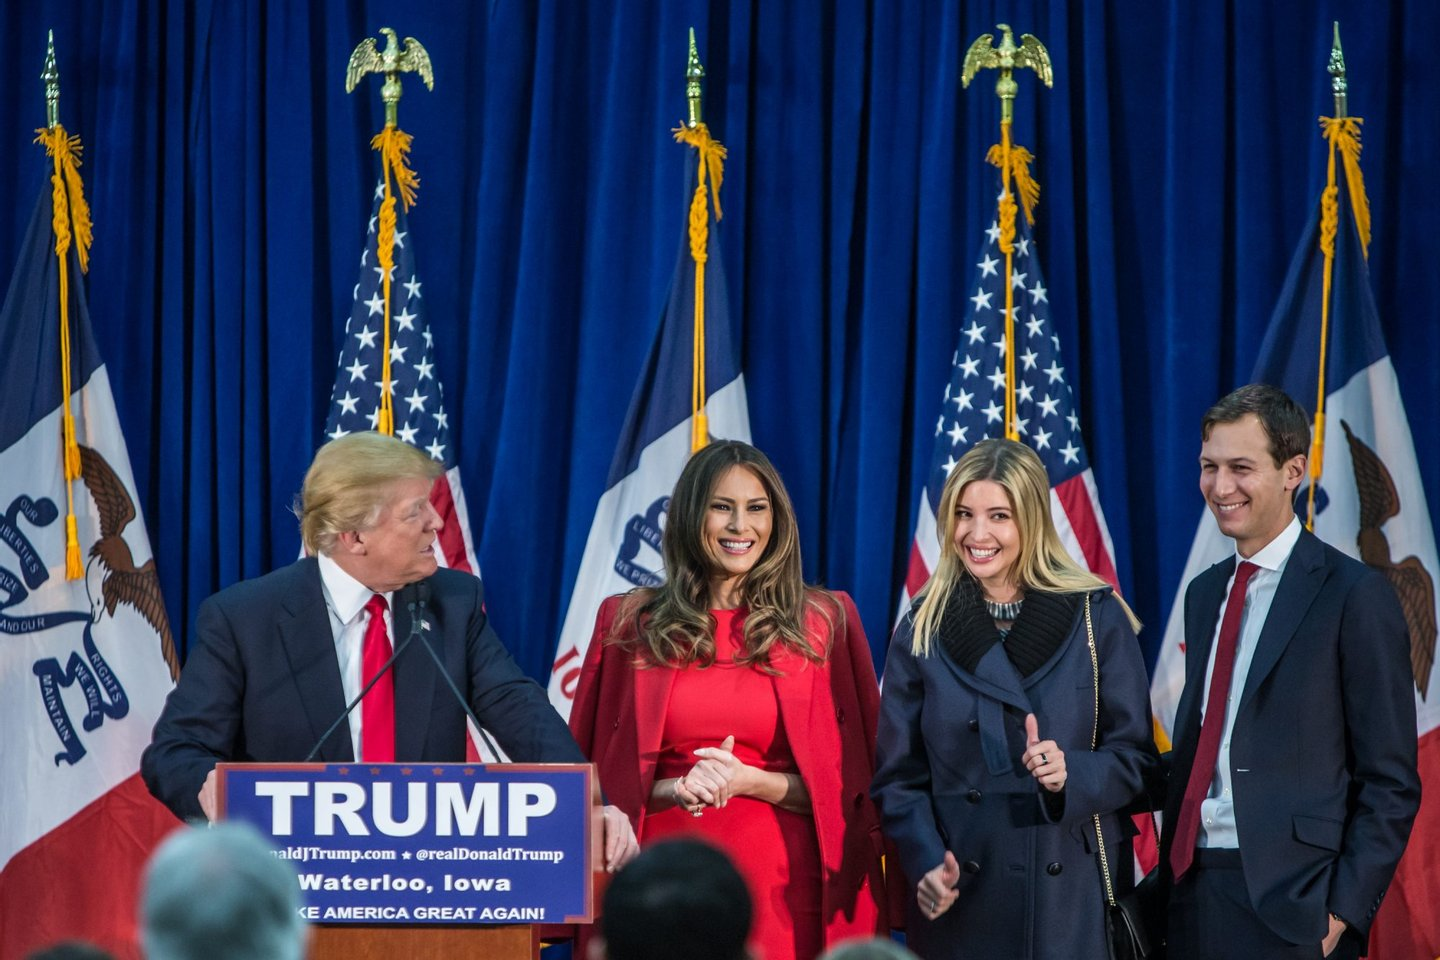 WATERLOO, IA - FEBRUARY 1: Republican presidential candidate Donald Trump (L) is joined on stage by his wife Melania Trump, daughter Ivanka Trump, and son-in-law Jared Kushner (L-R) at a campaign rally at the Ramada Waterloo Hotel and Convention Center on February 1, 2016 in Waterloo, Iowa. The Democratic and Republican Iowa Caucuses, the first step in nominating a presidential candidate from each party, will take place on February 1. (Photo by Brendan Hoffman/Getty Images)